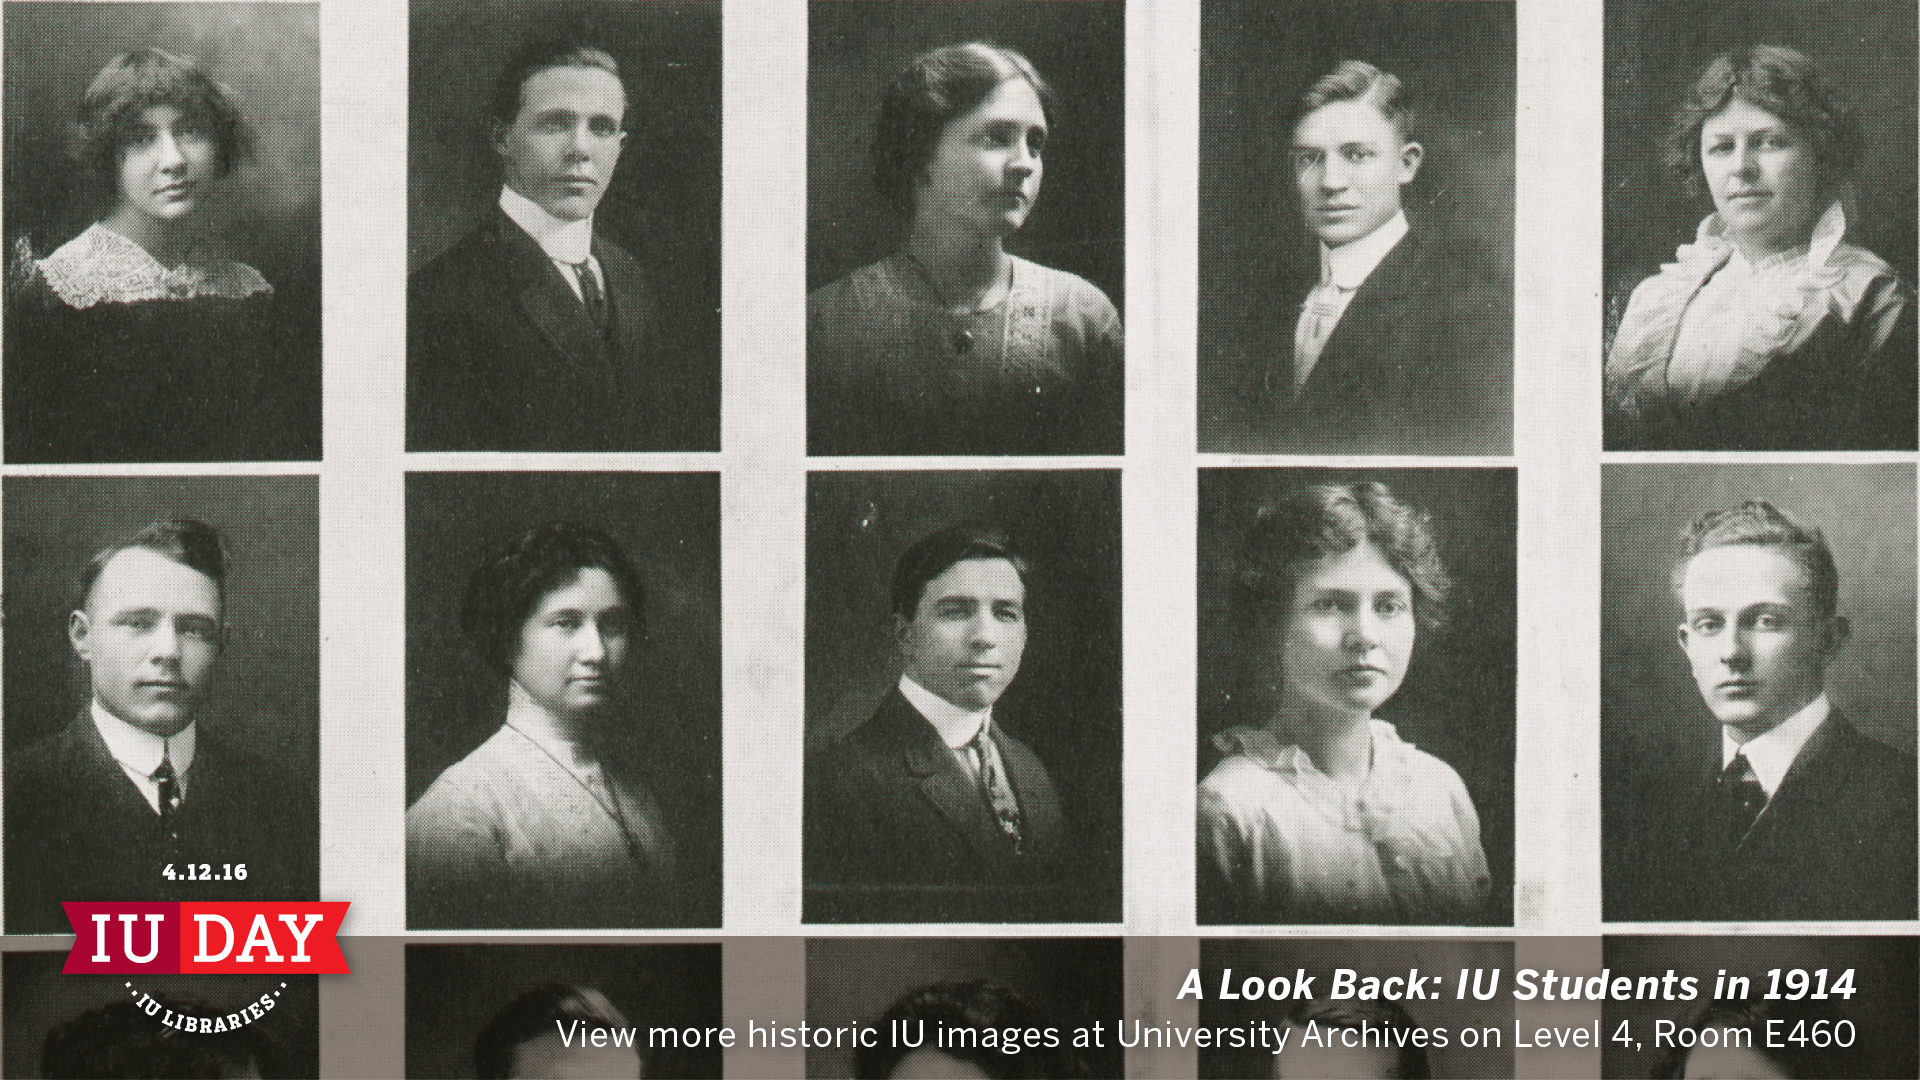 A Look Back: IU Students in 1914.